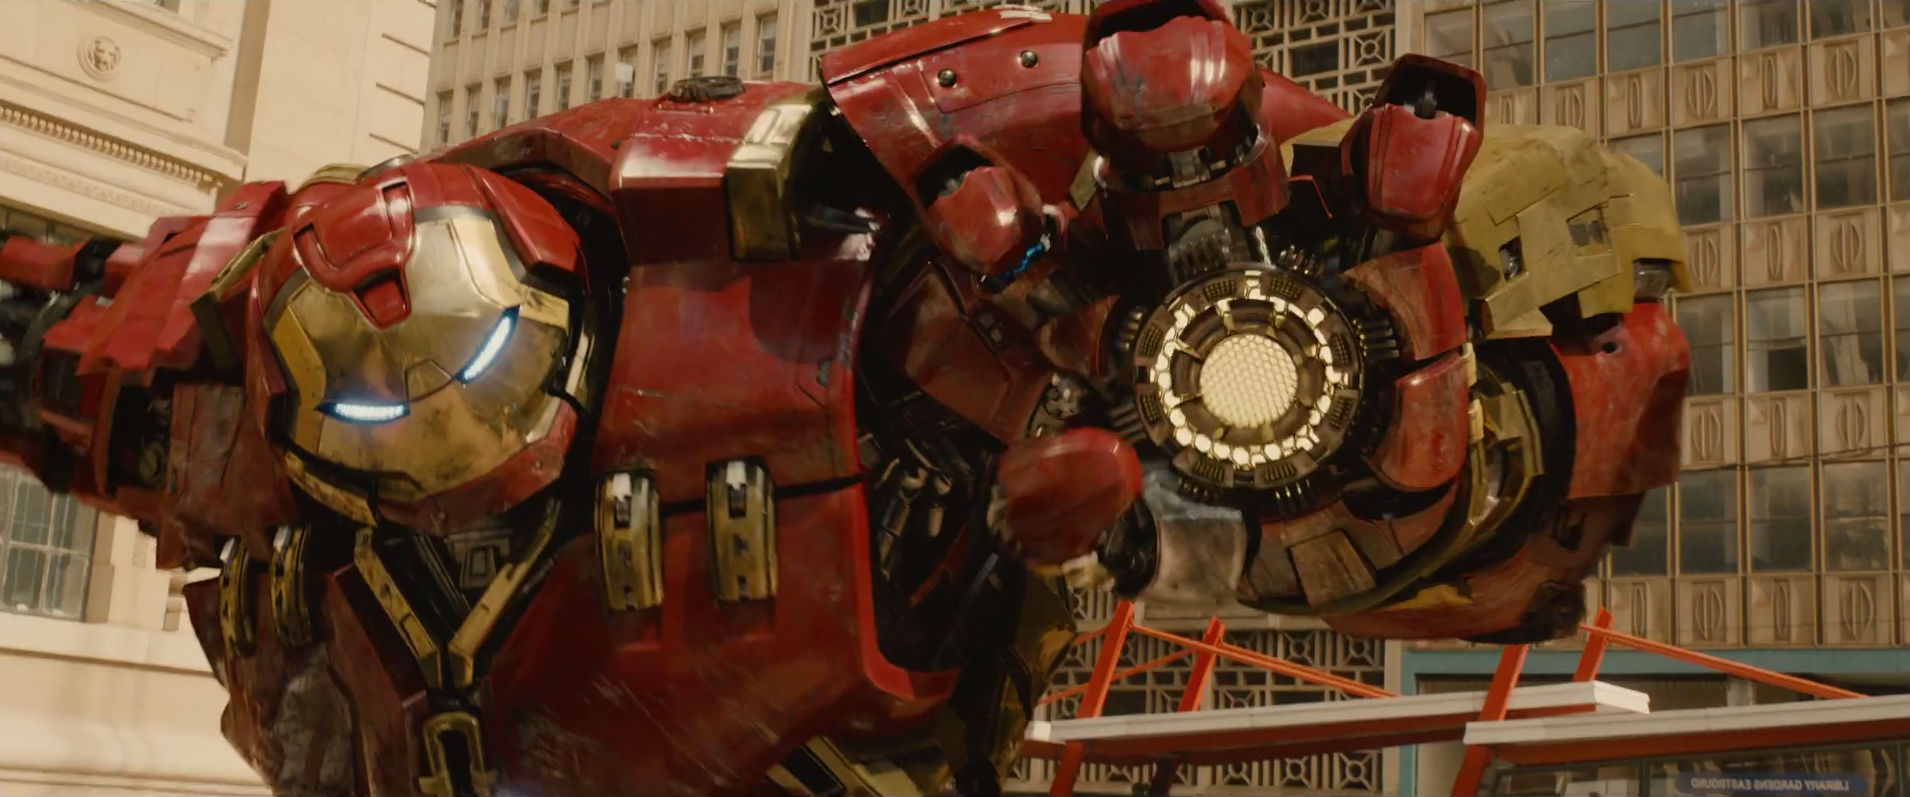 age-of-ultron-hulkbuster